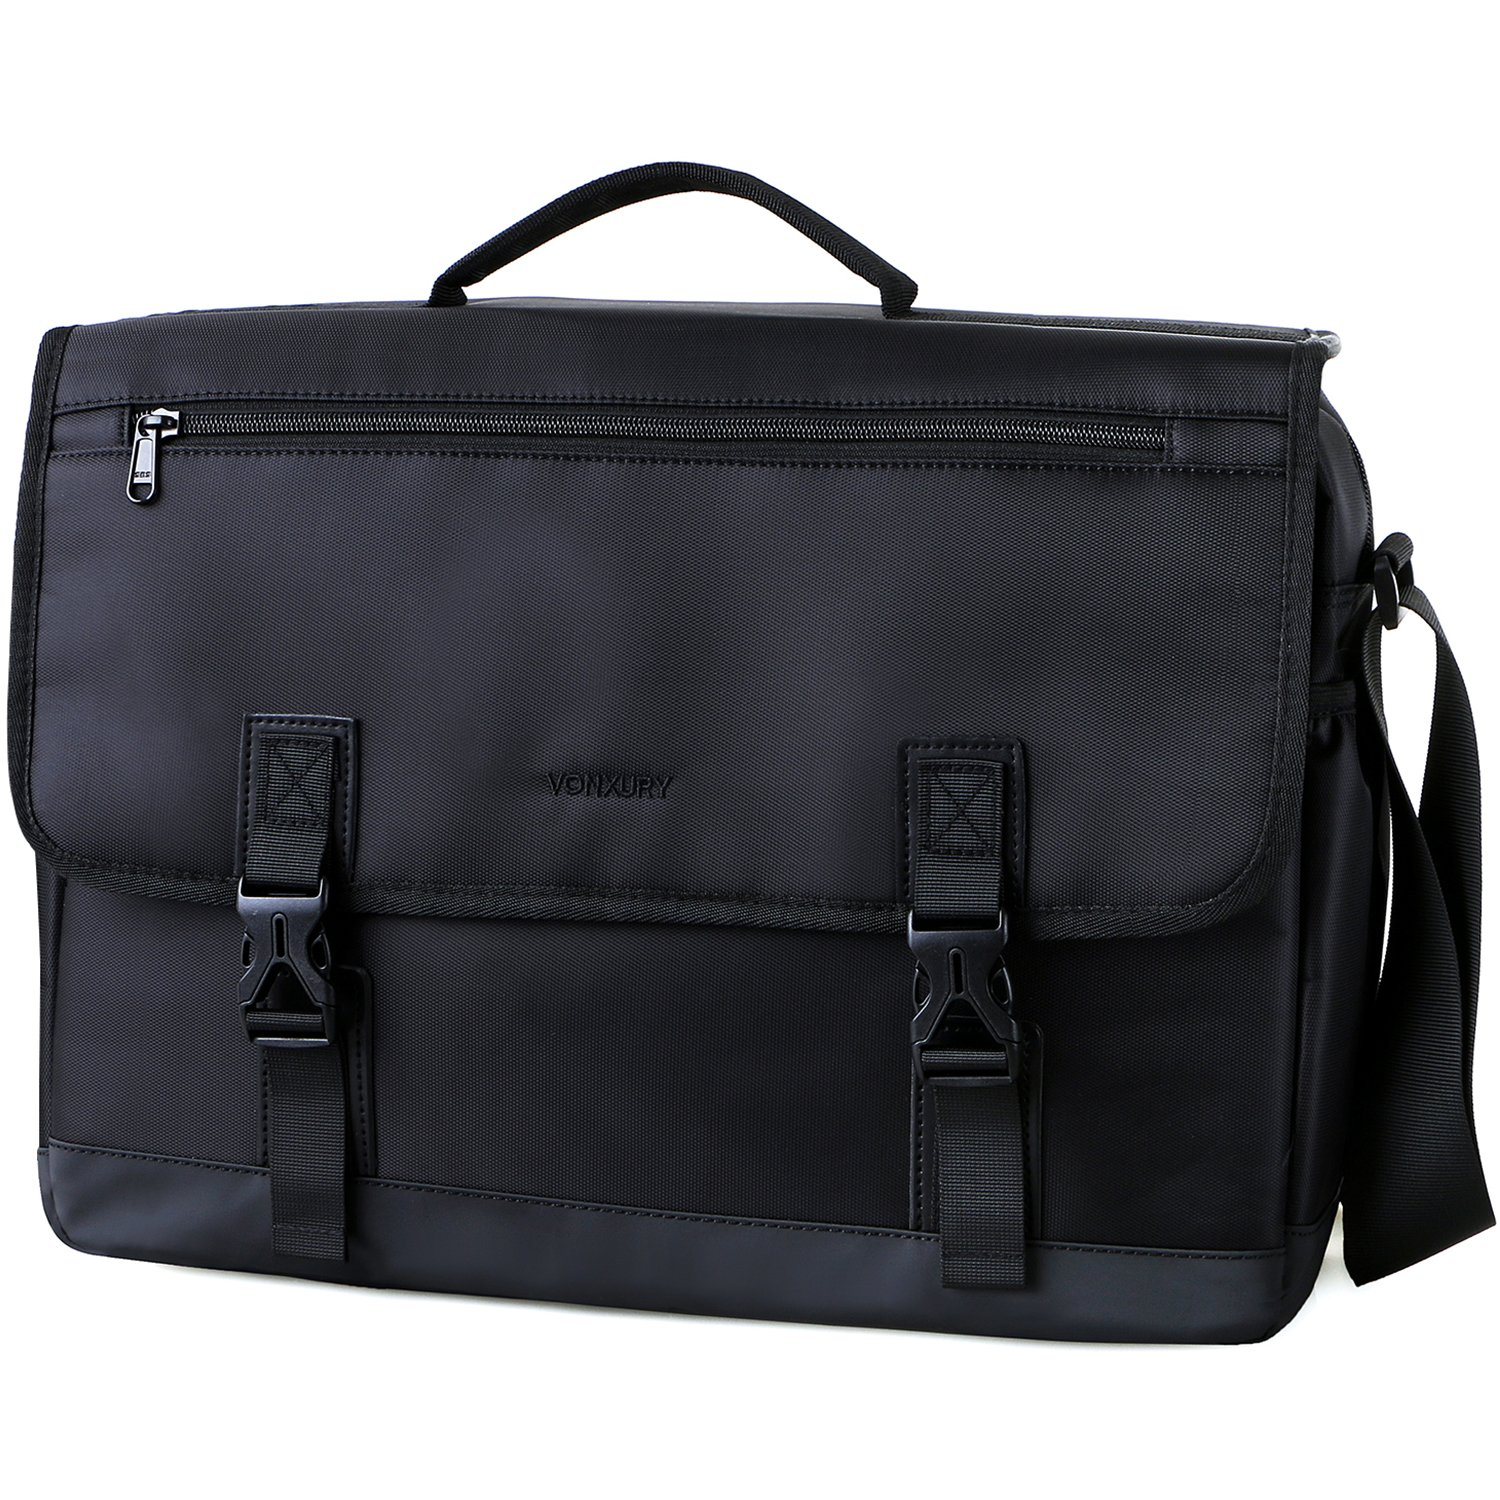 Messenger Bag for Men,Water Resistant 15.6 Laptop Bag Lightweight School Bag Vonxury VX VONXURY VXMB001GRNL